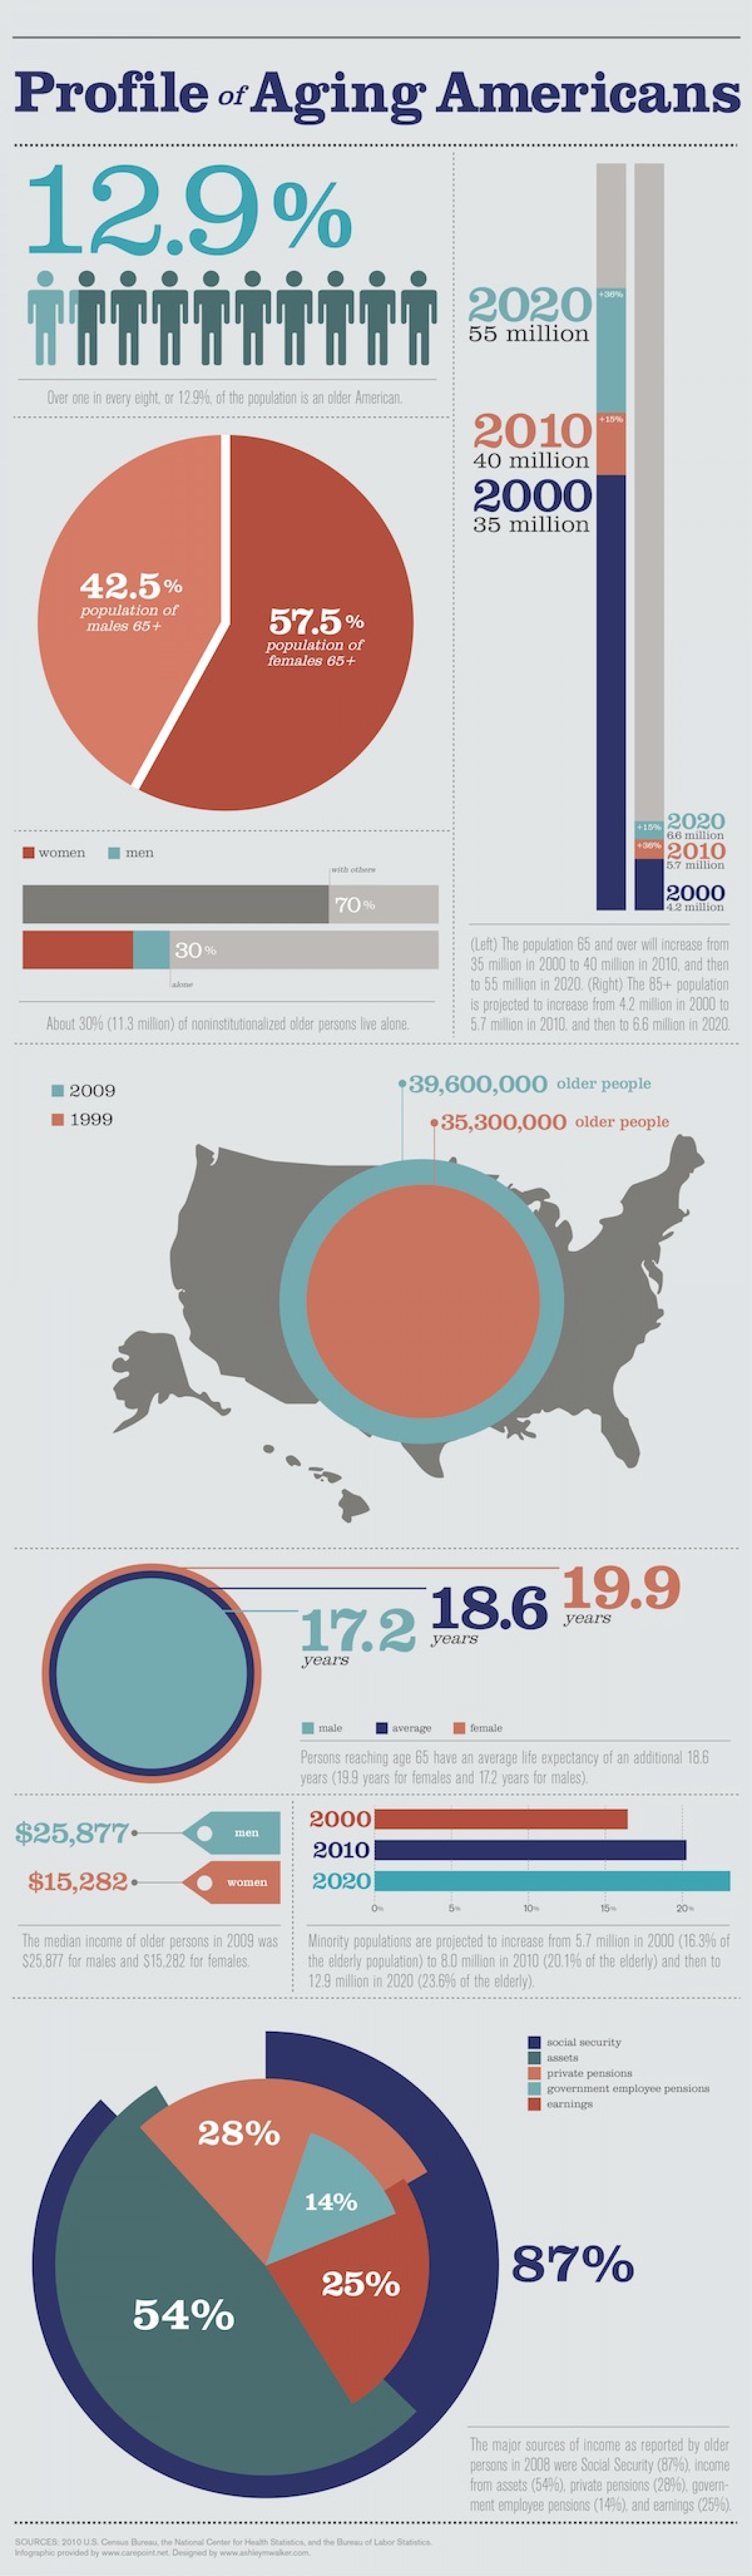 Aging Americans Infographic Infographic